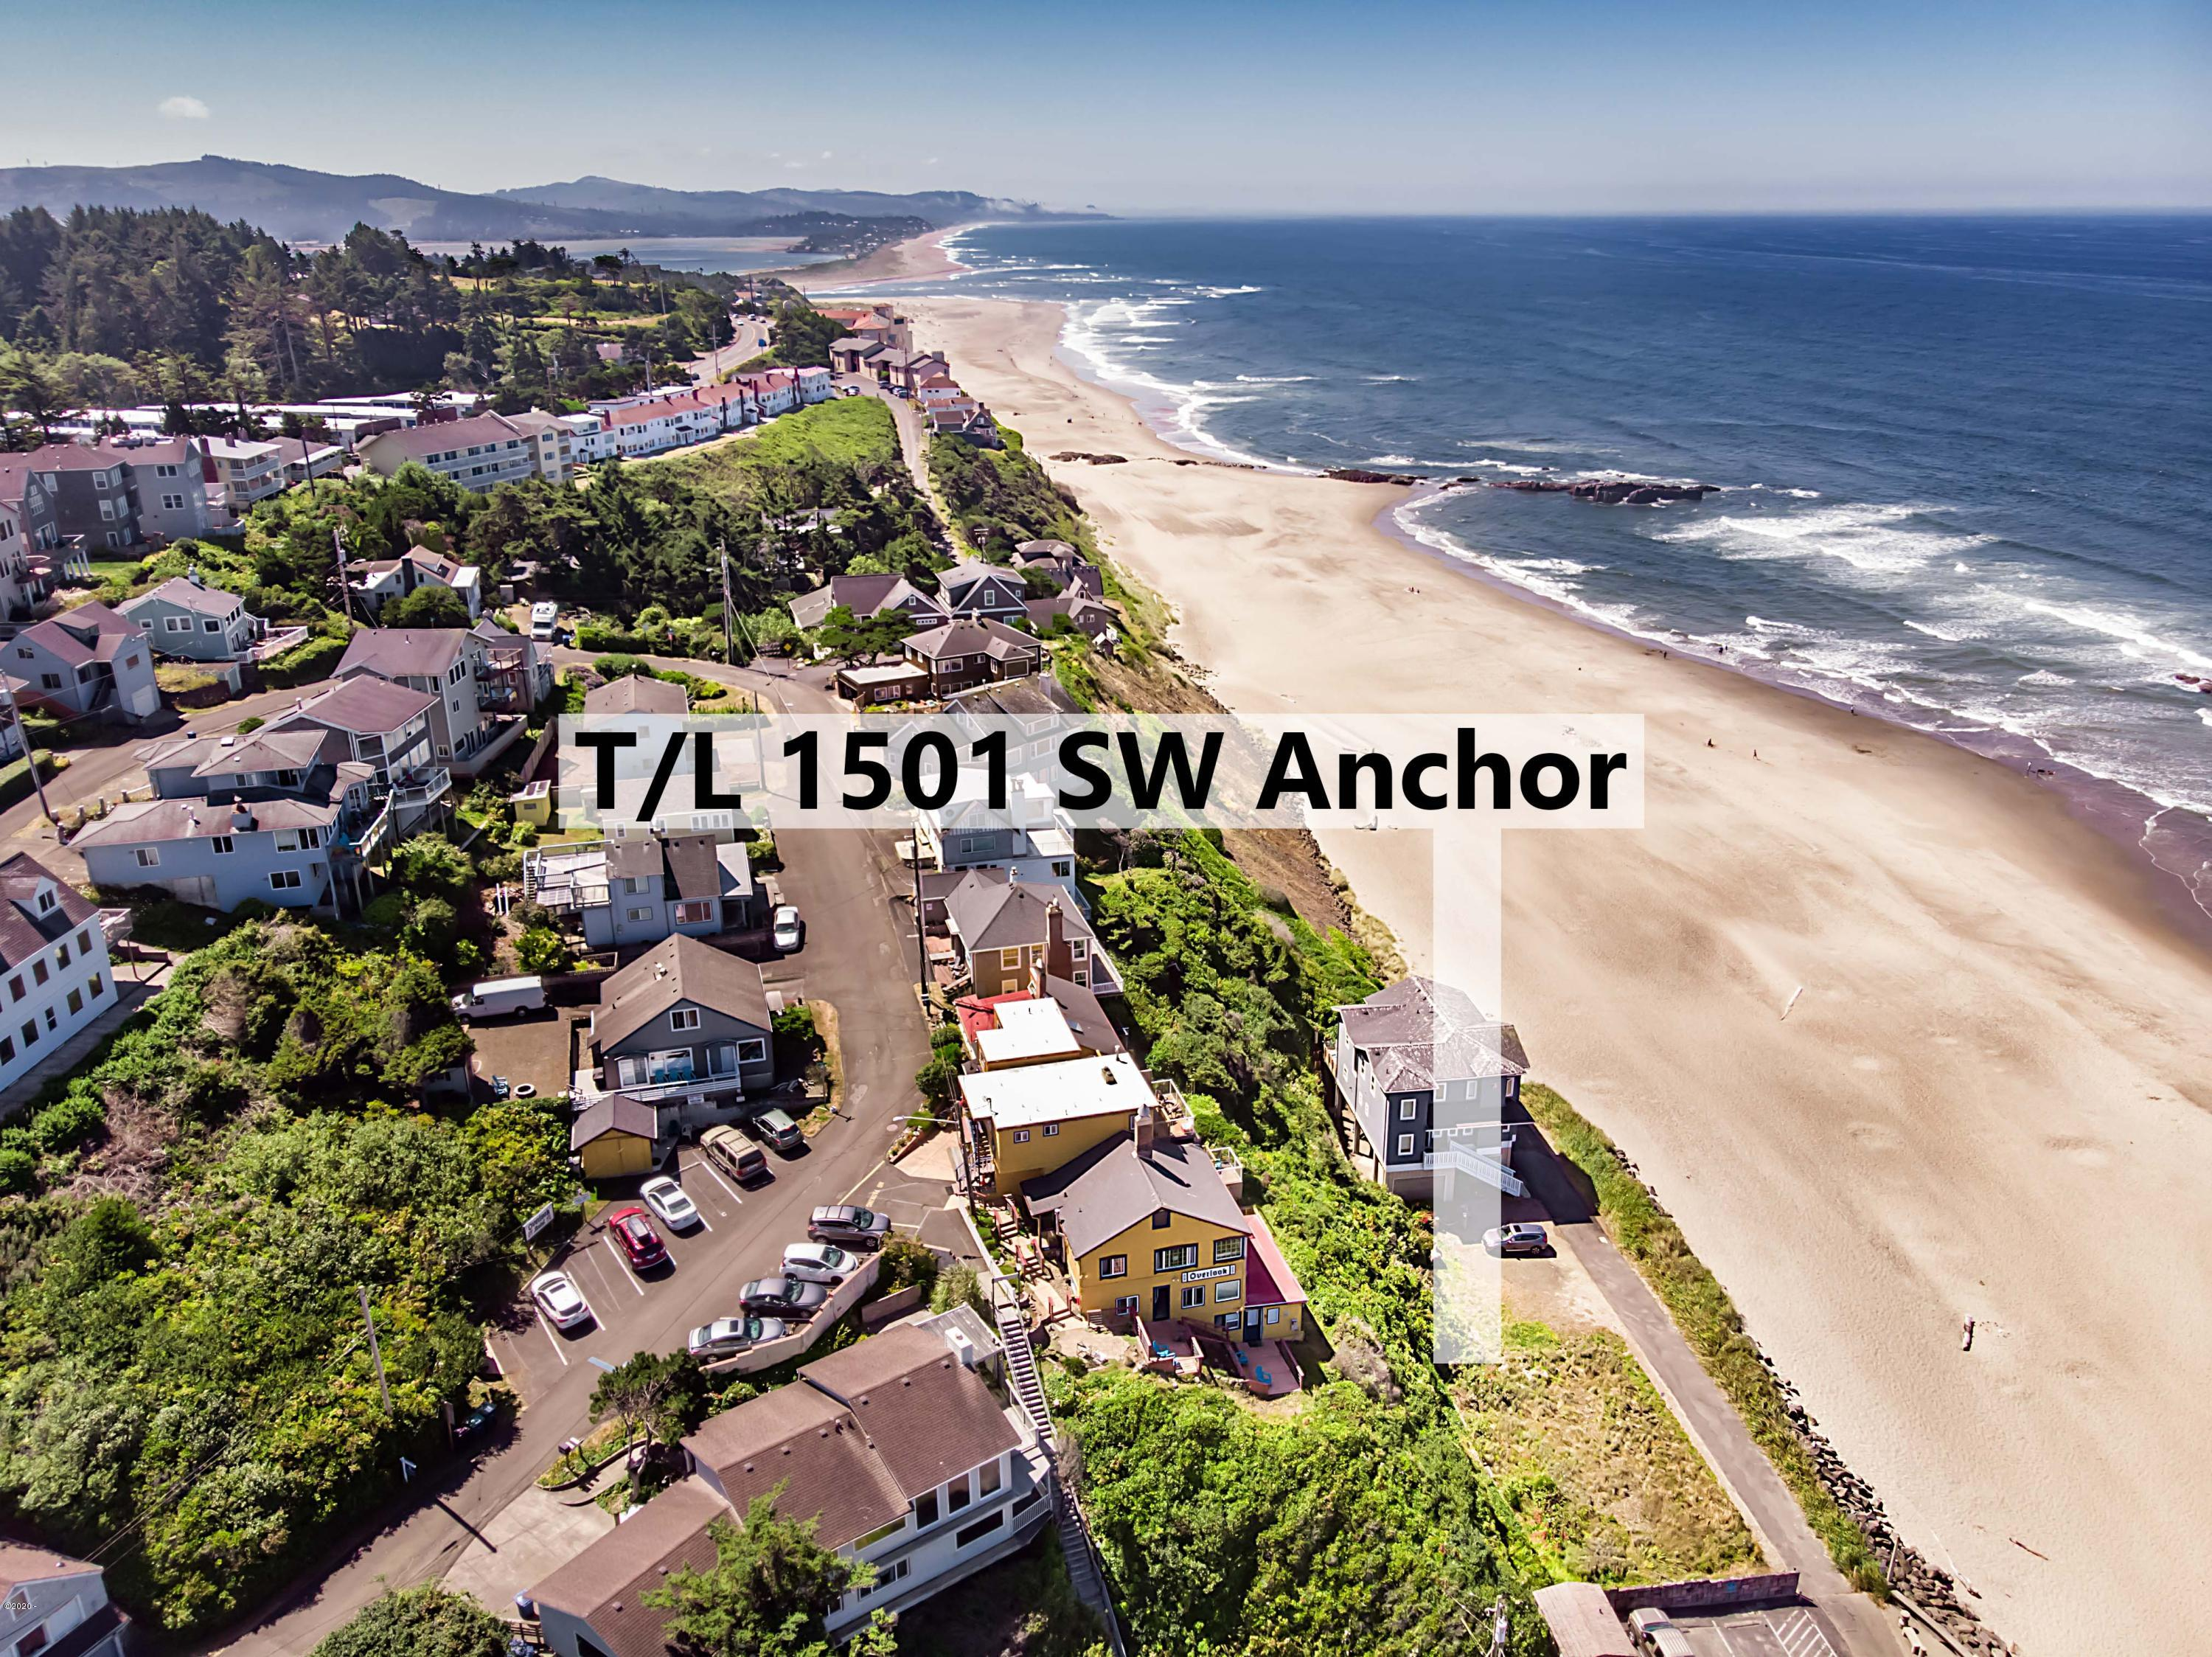 3500 Blk Sw Anchor Ave Tl 1501, Lincoln City, OR 97367 - Arial